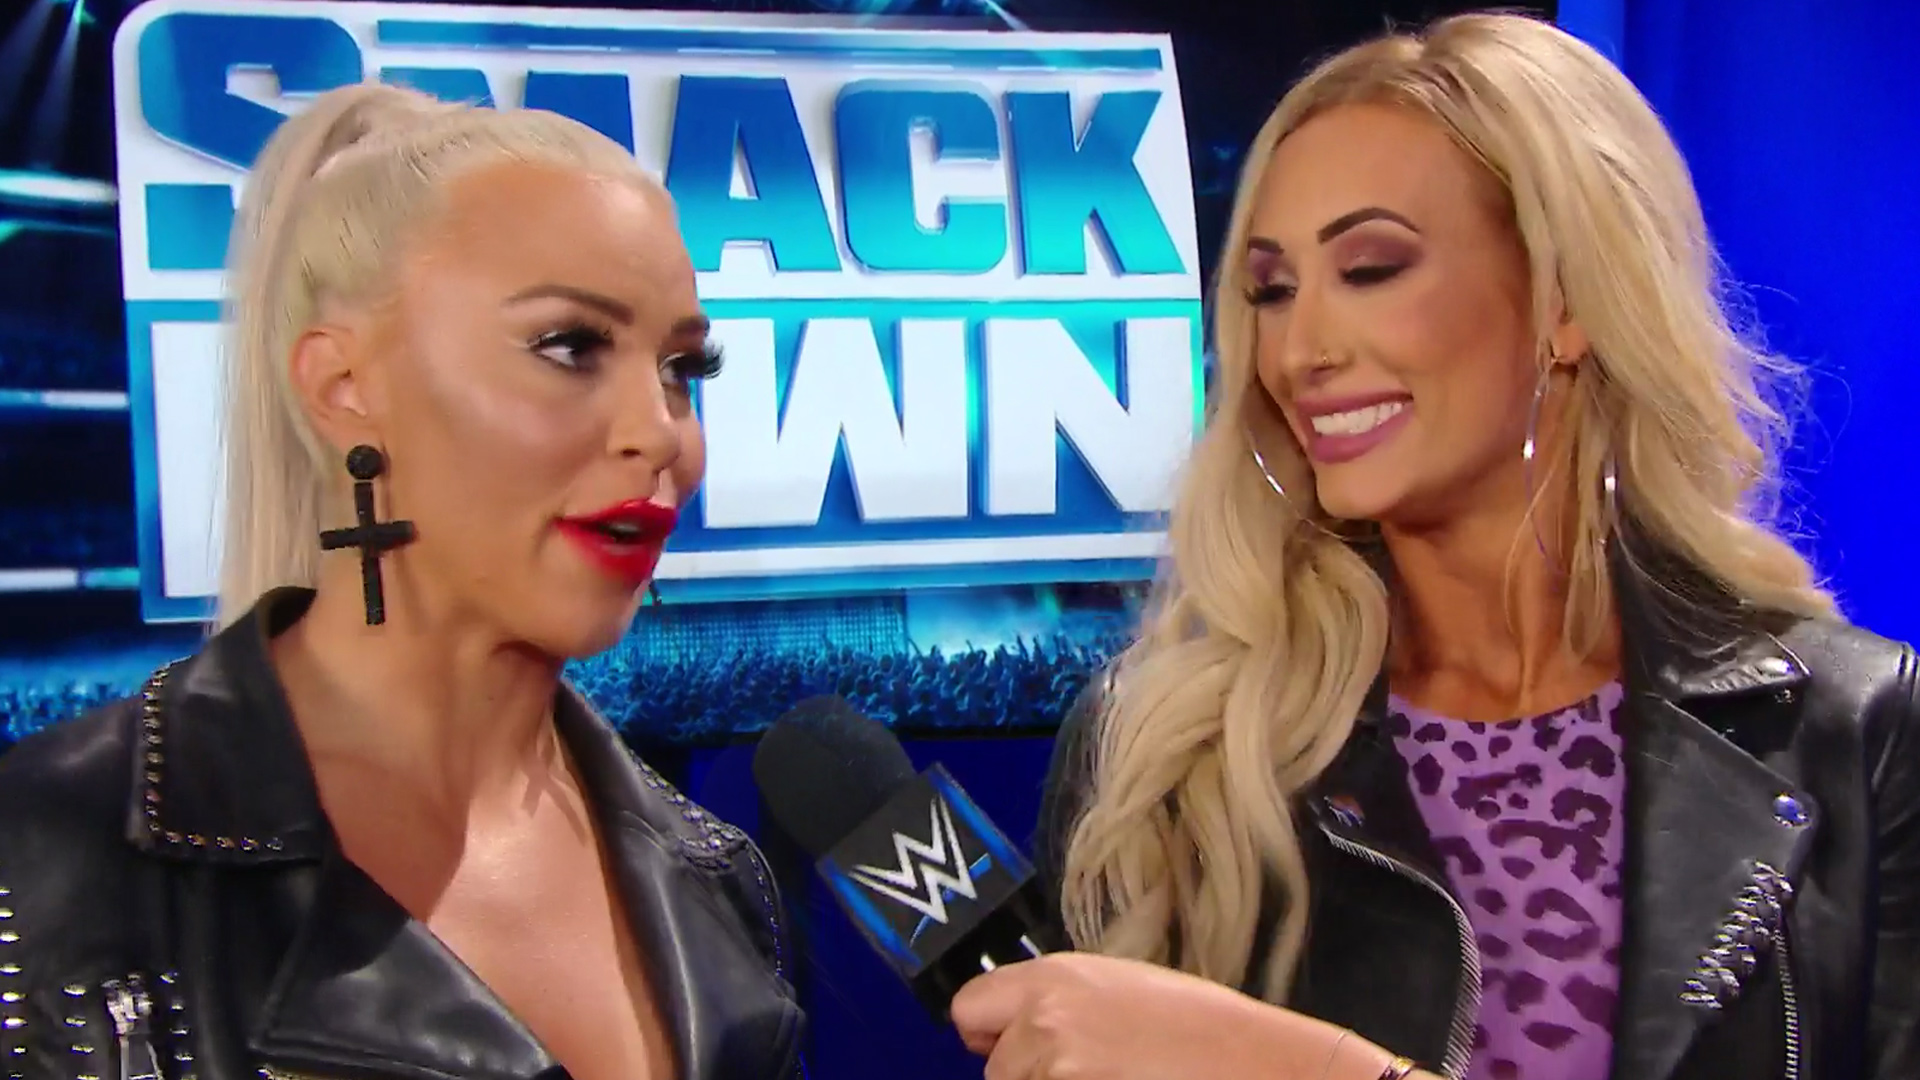 Dana Brooke joins the Women's Money in the Bank match